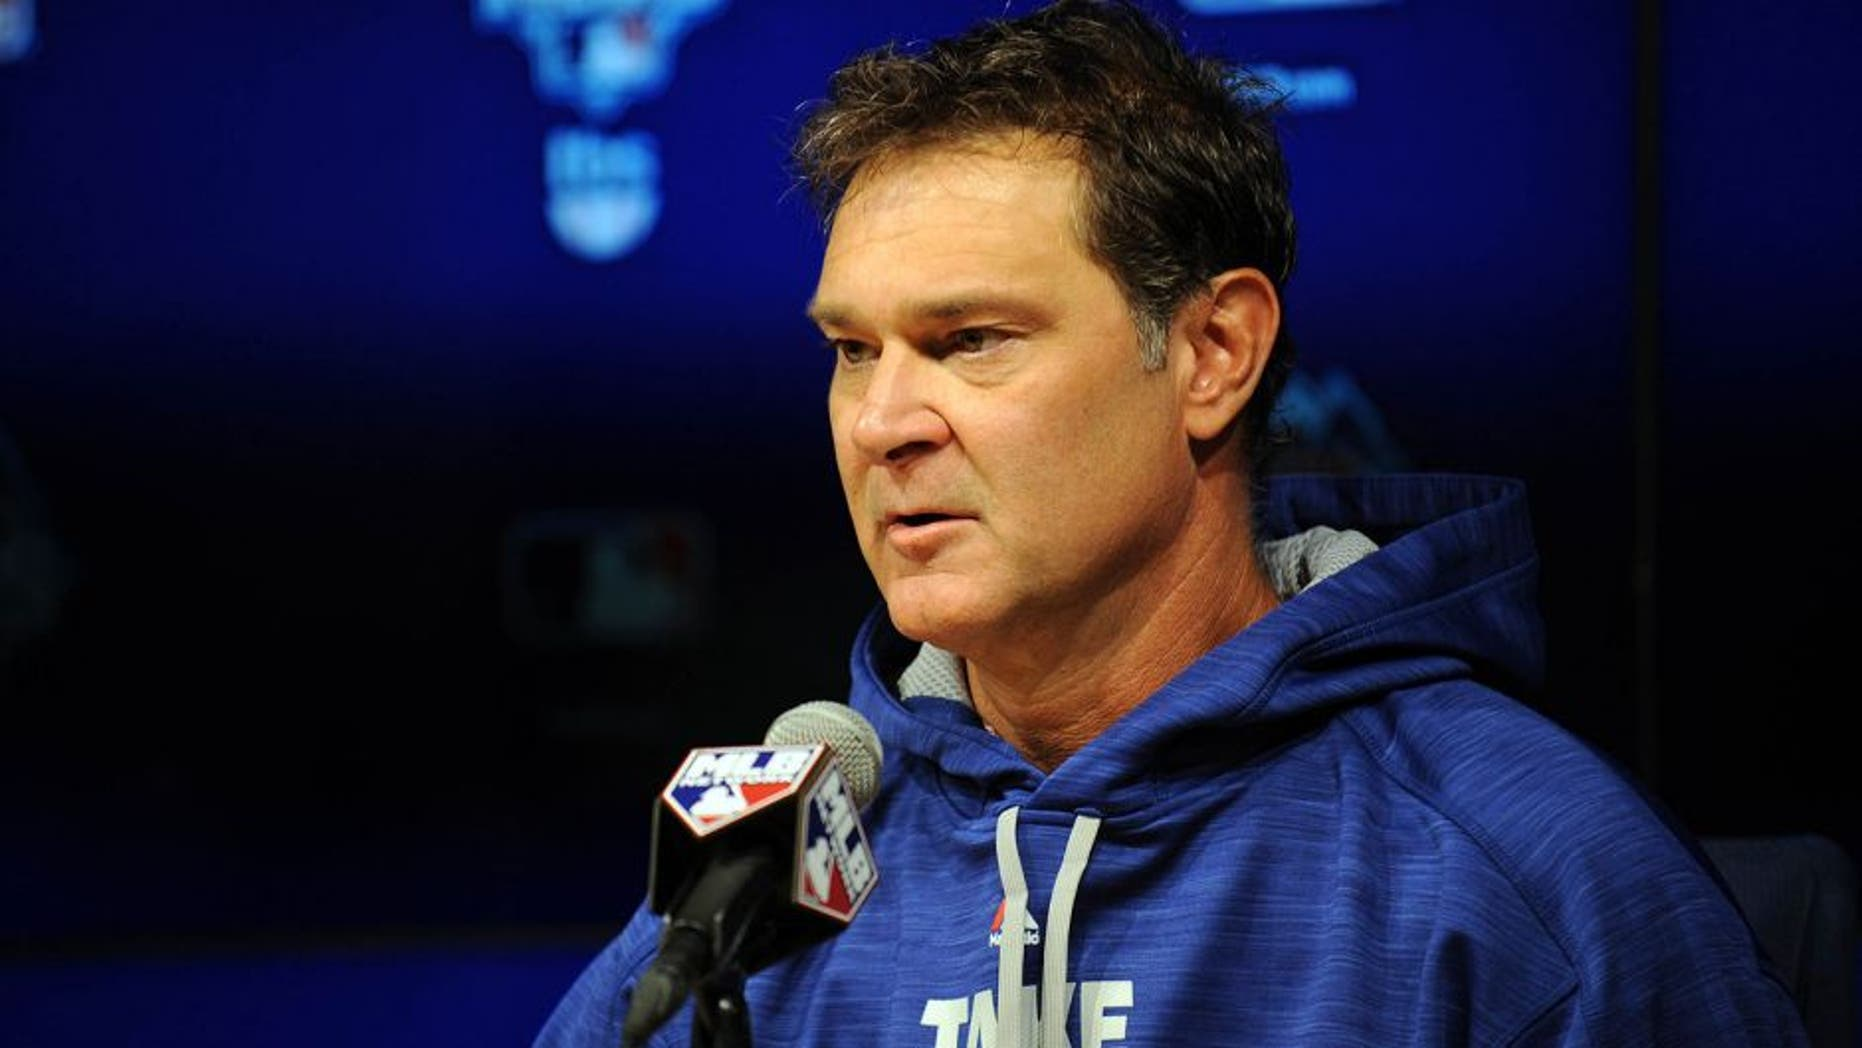 October 8, 2015; Los Angeles, CA, USA; Los Angeles Dodgers manager Don Mattingly speaks with media following workouts before game one of the NLDS at Dodger Stadium. Mandatory Credit: Gary A. Vasquez-USA TODAY Sports